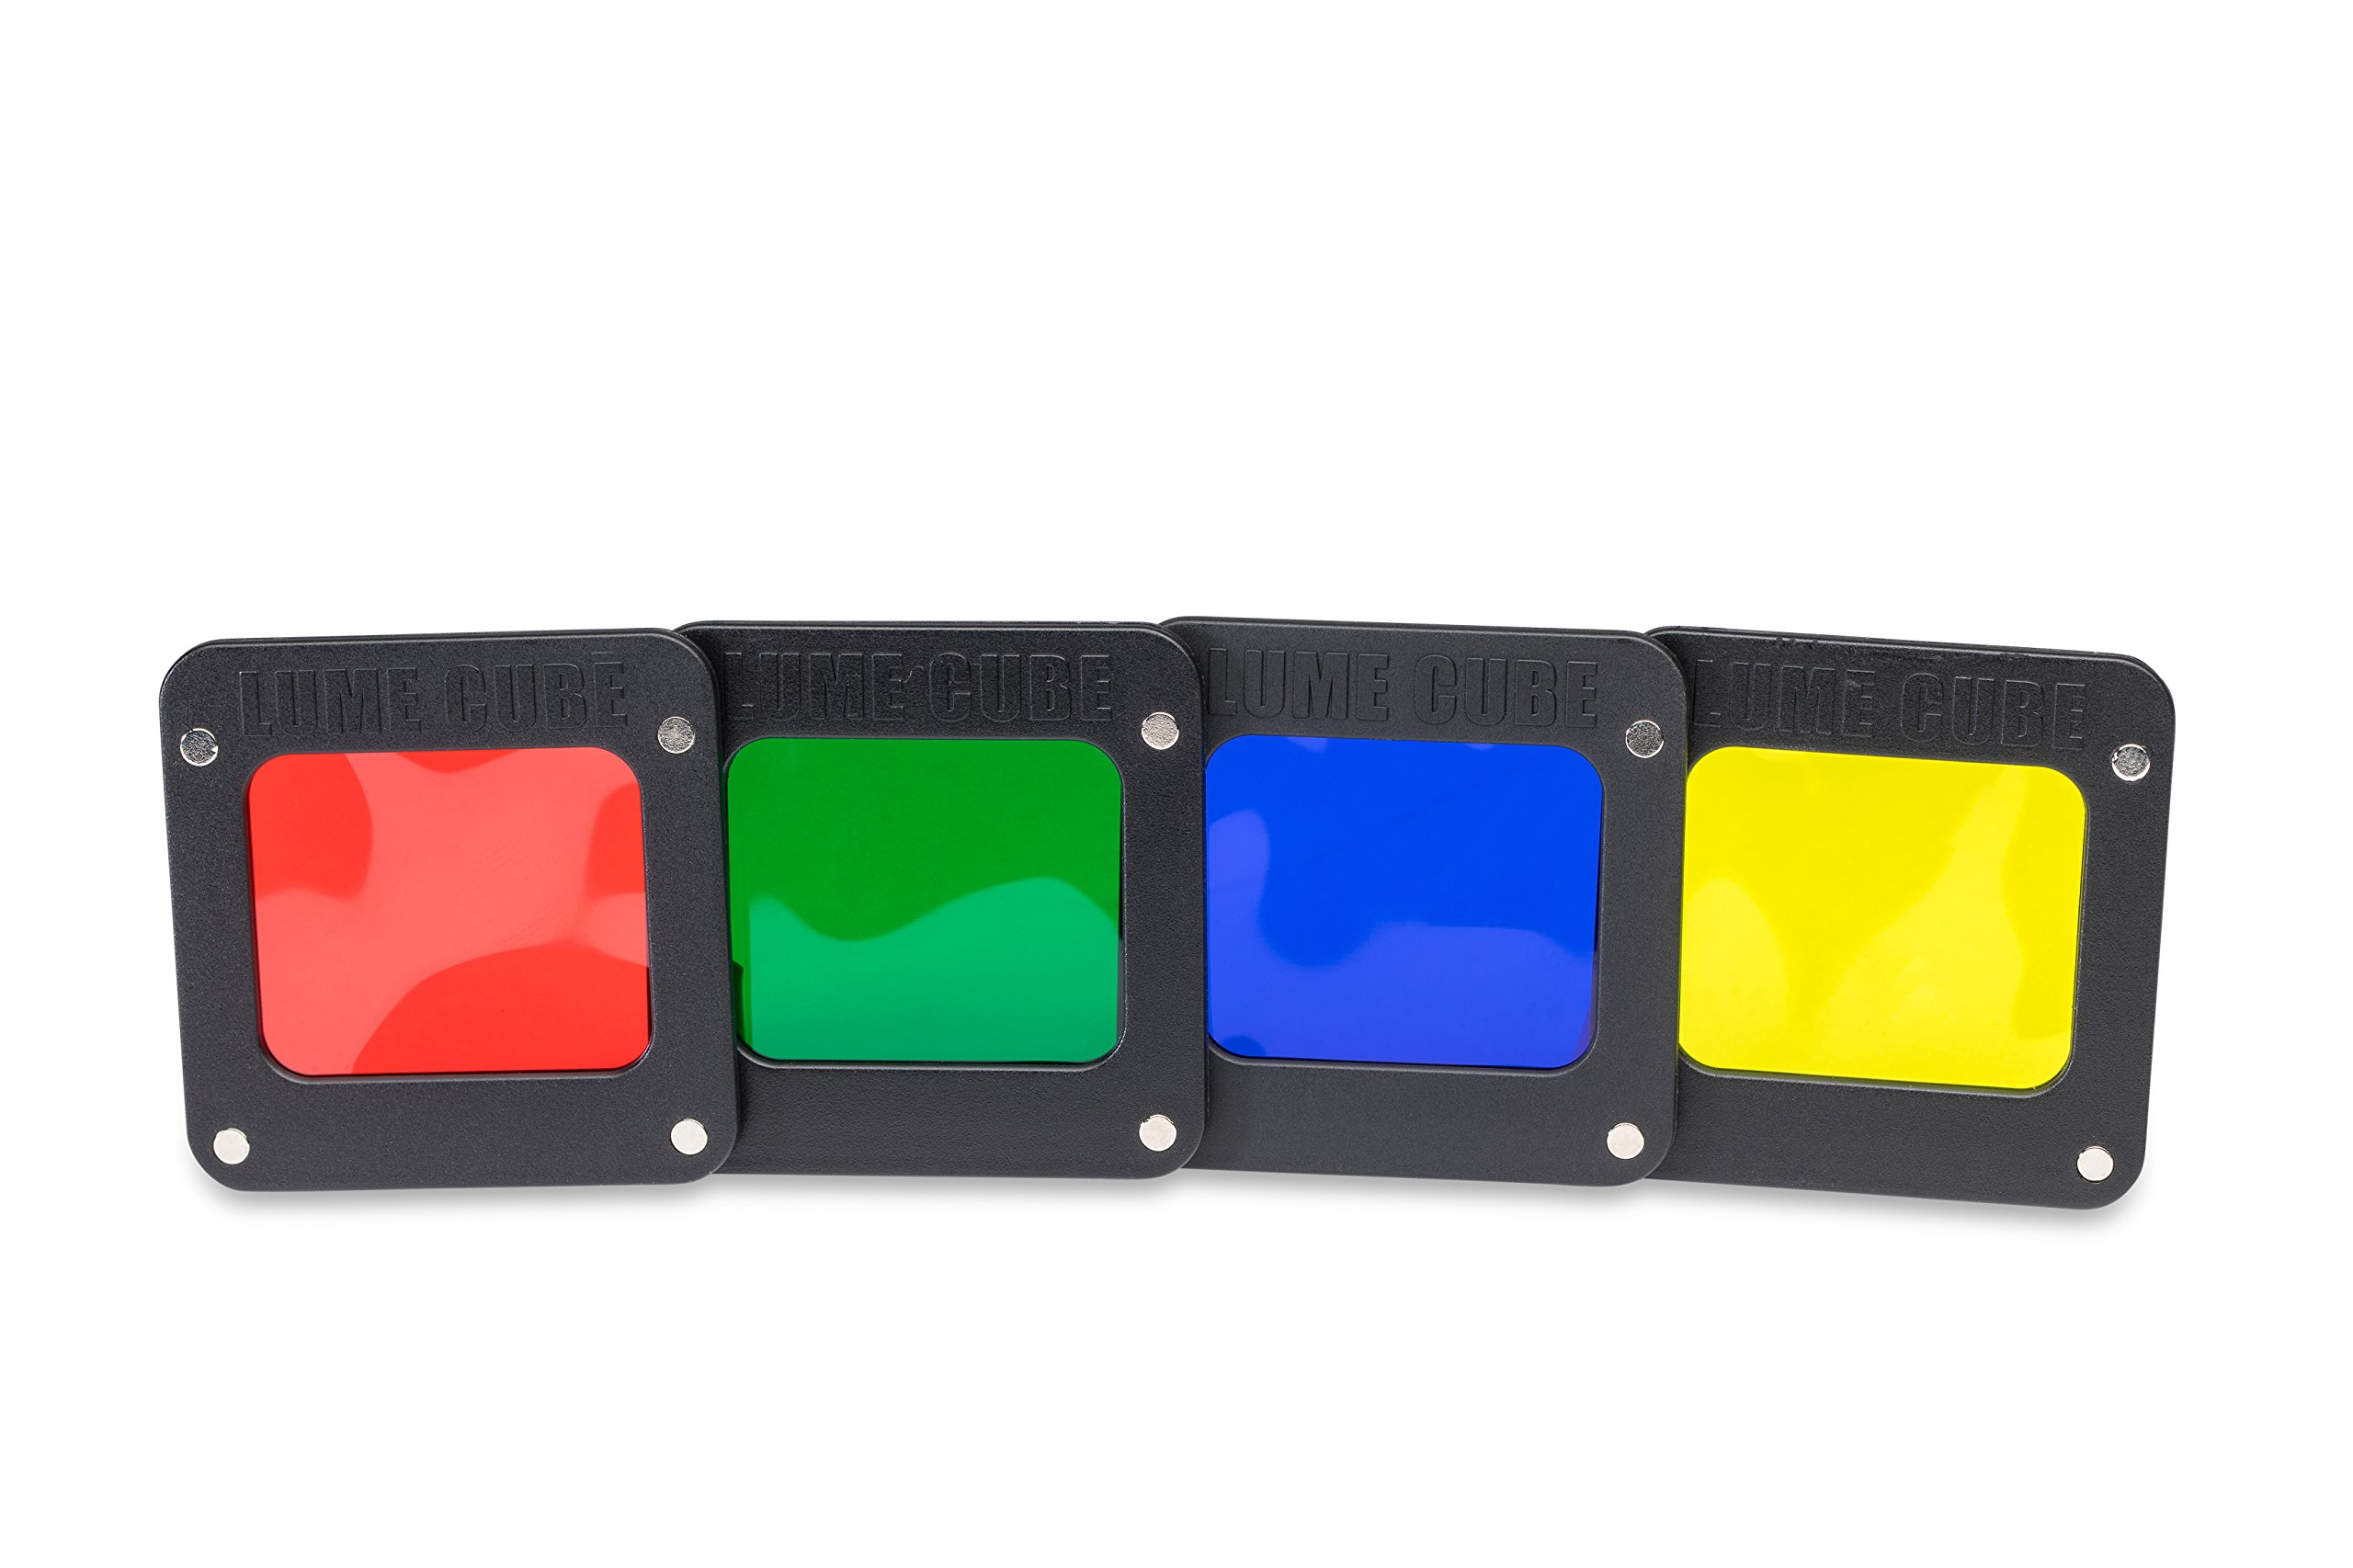 Lume Cube - RBGY Color Gels for Light-House (includes one Red, Blue, Green and Yellow Magnetic Gel)